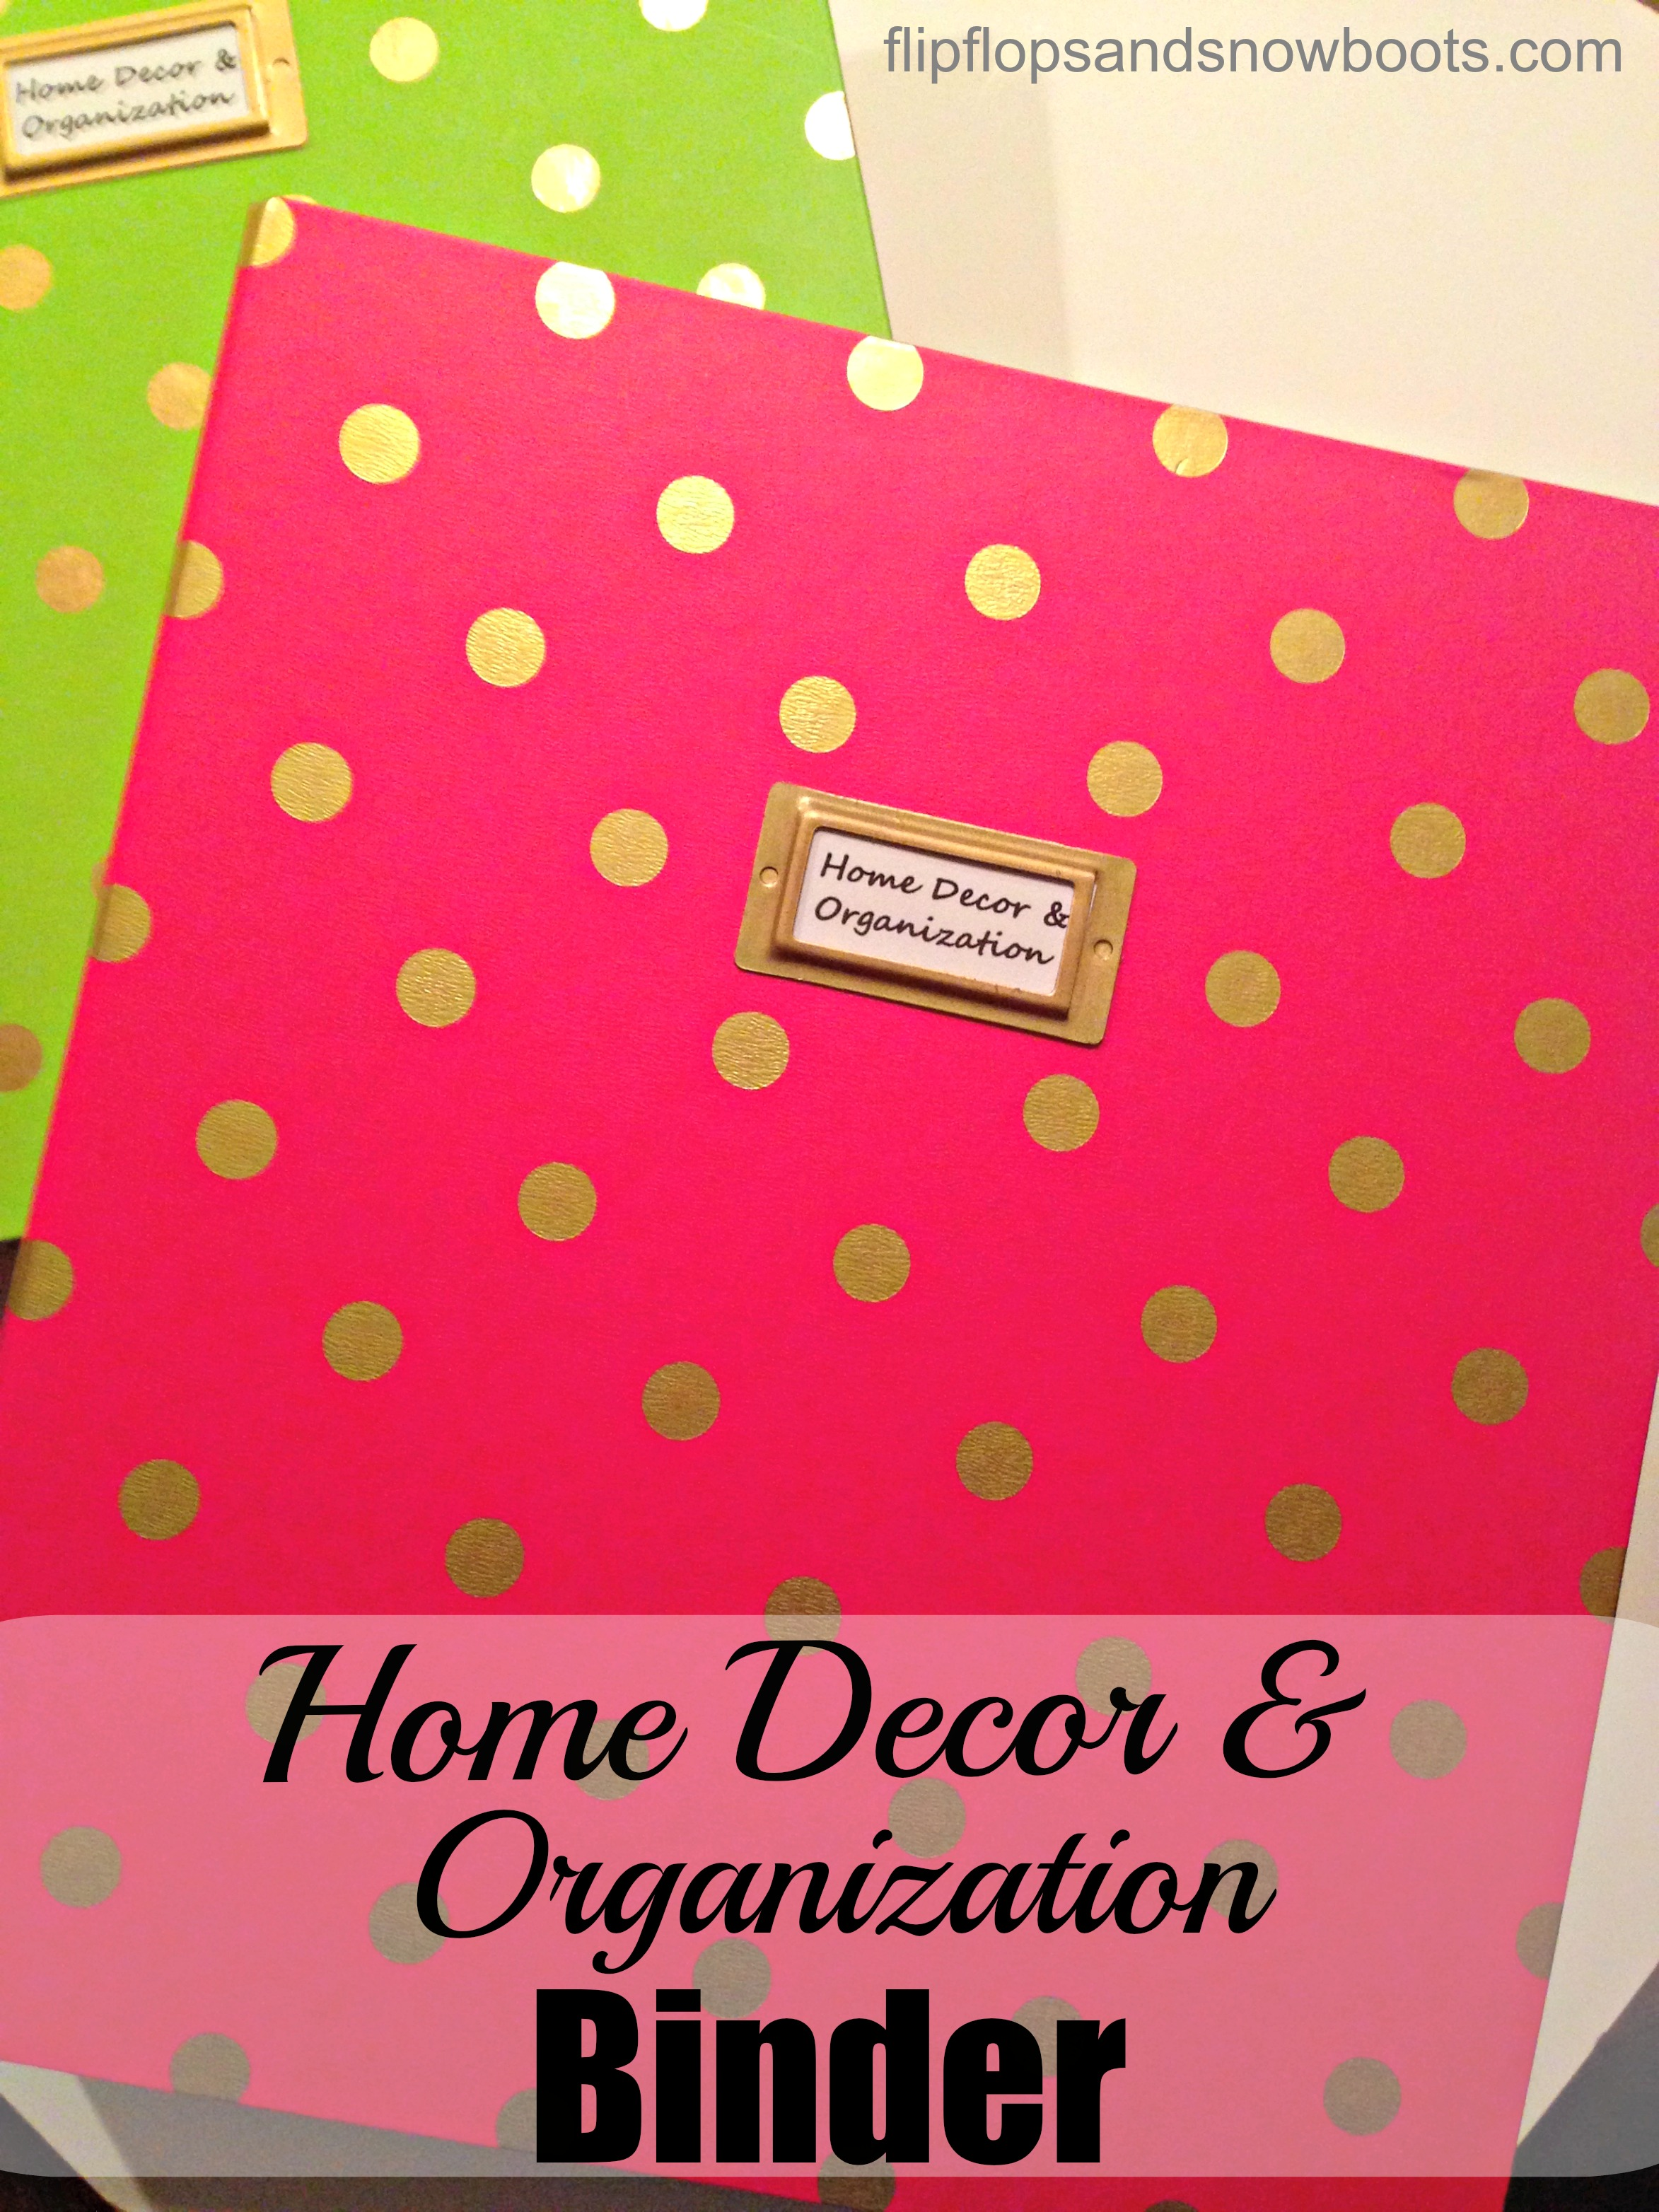 Home Decor and Organization Binder